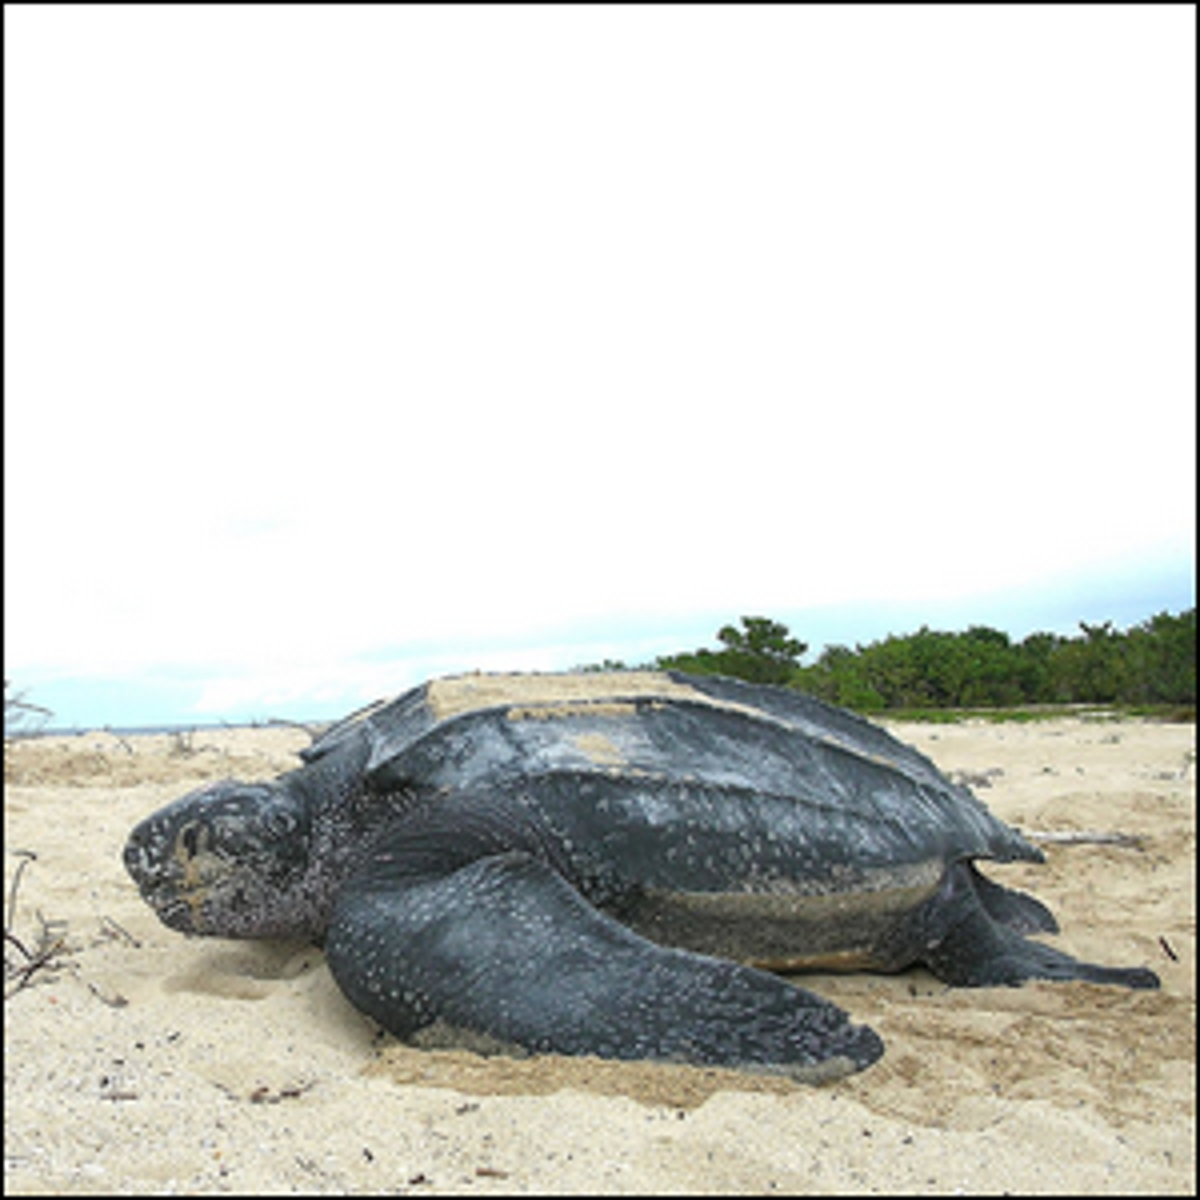 Photo of a Leatherback Sea Turtle located at the Sandy Point National Wildlife Refuge, U.S. Virgin Islands.